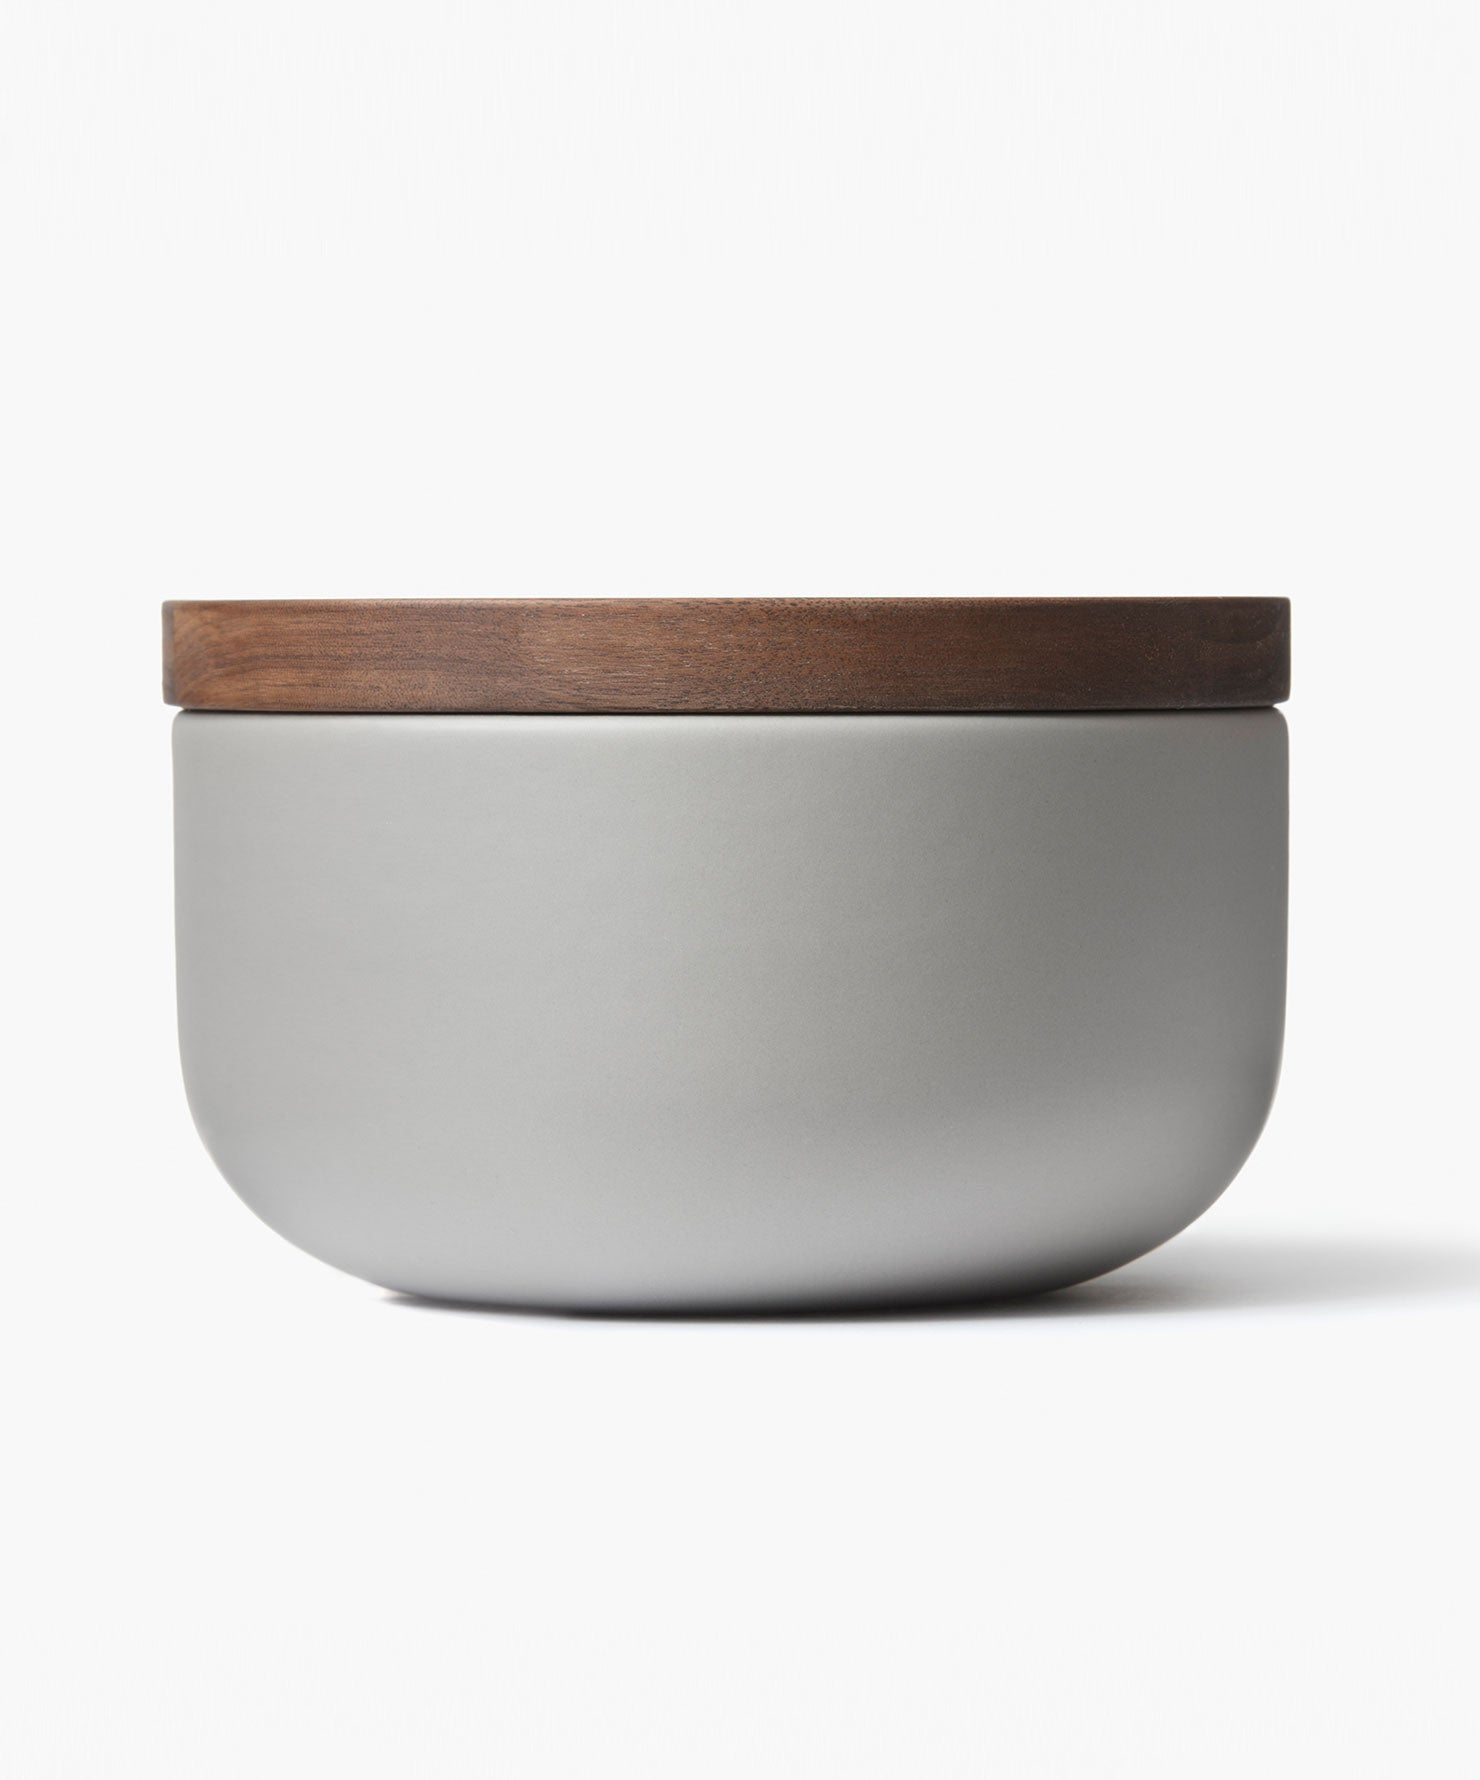 Less Bowl Schale Vincent Van Duysen